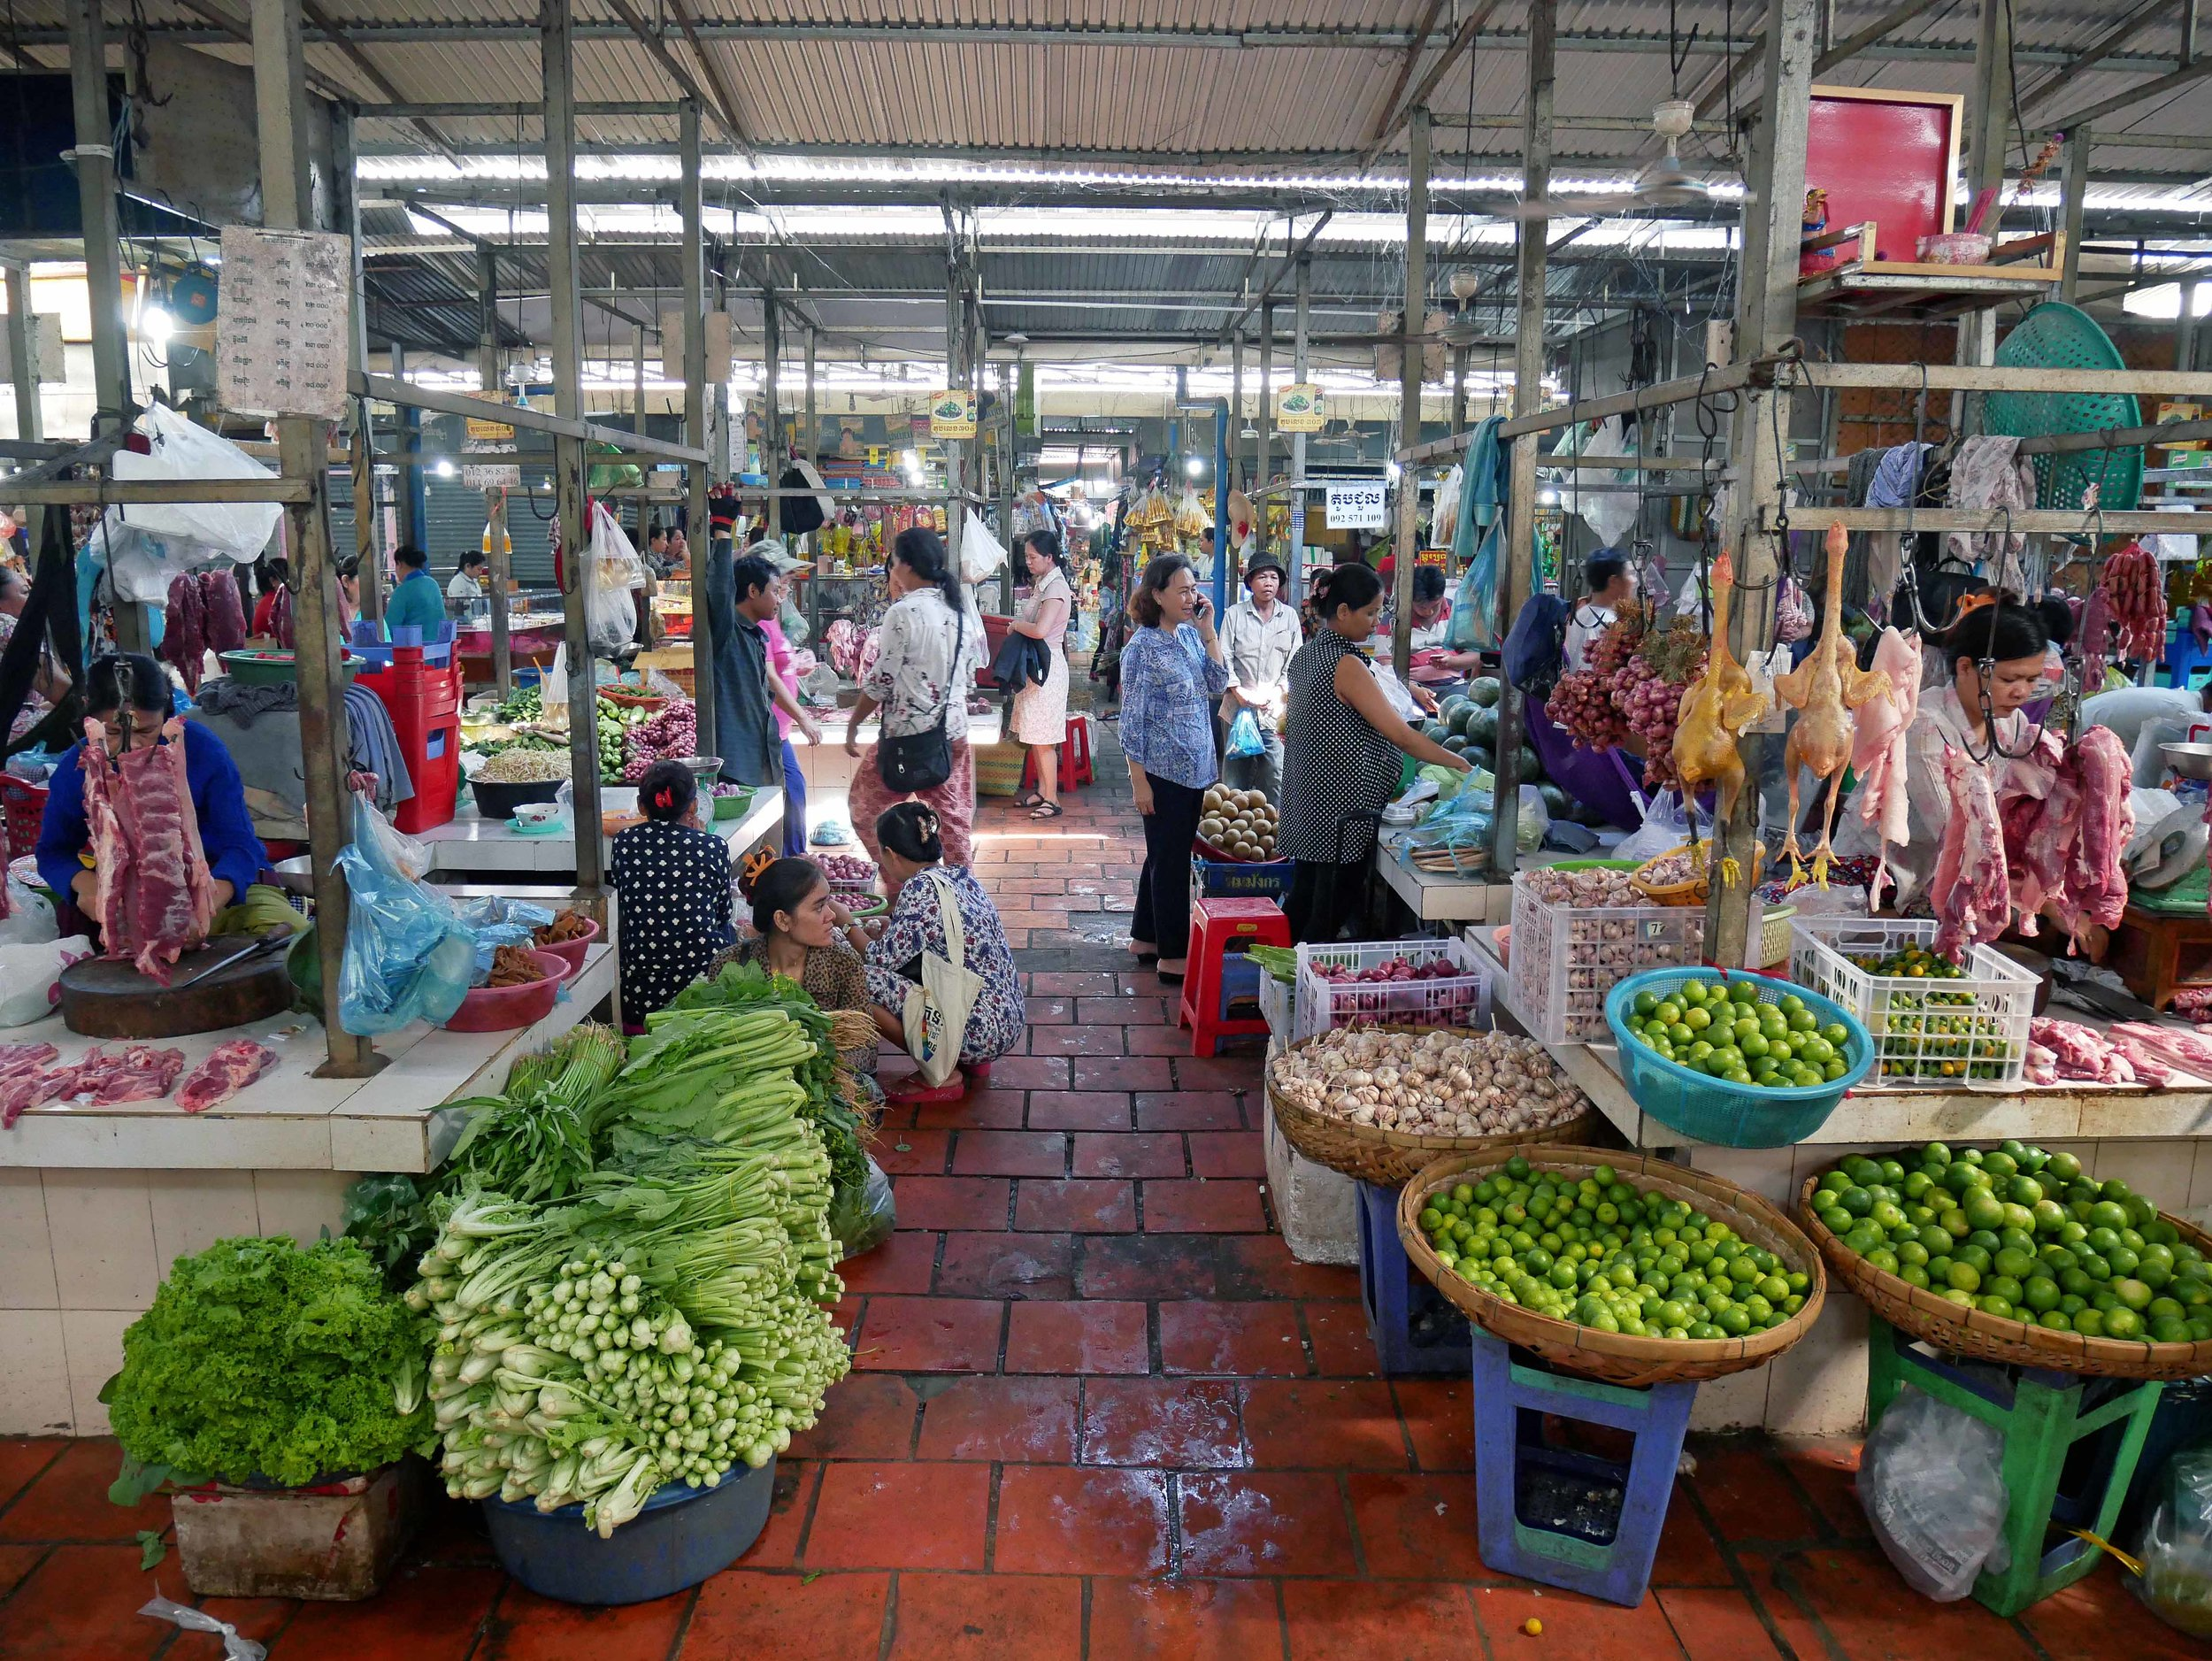 We started our morning with a shopping trip at Boeung Keng Kang Market (March 10).